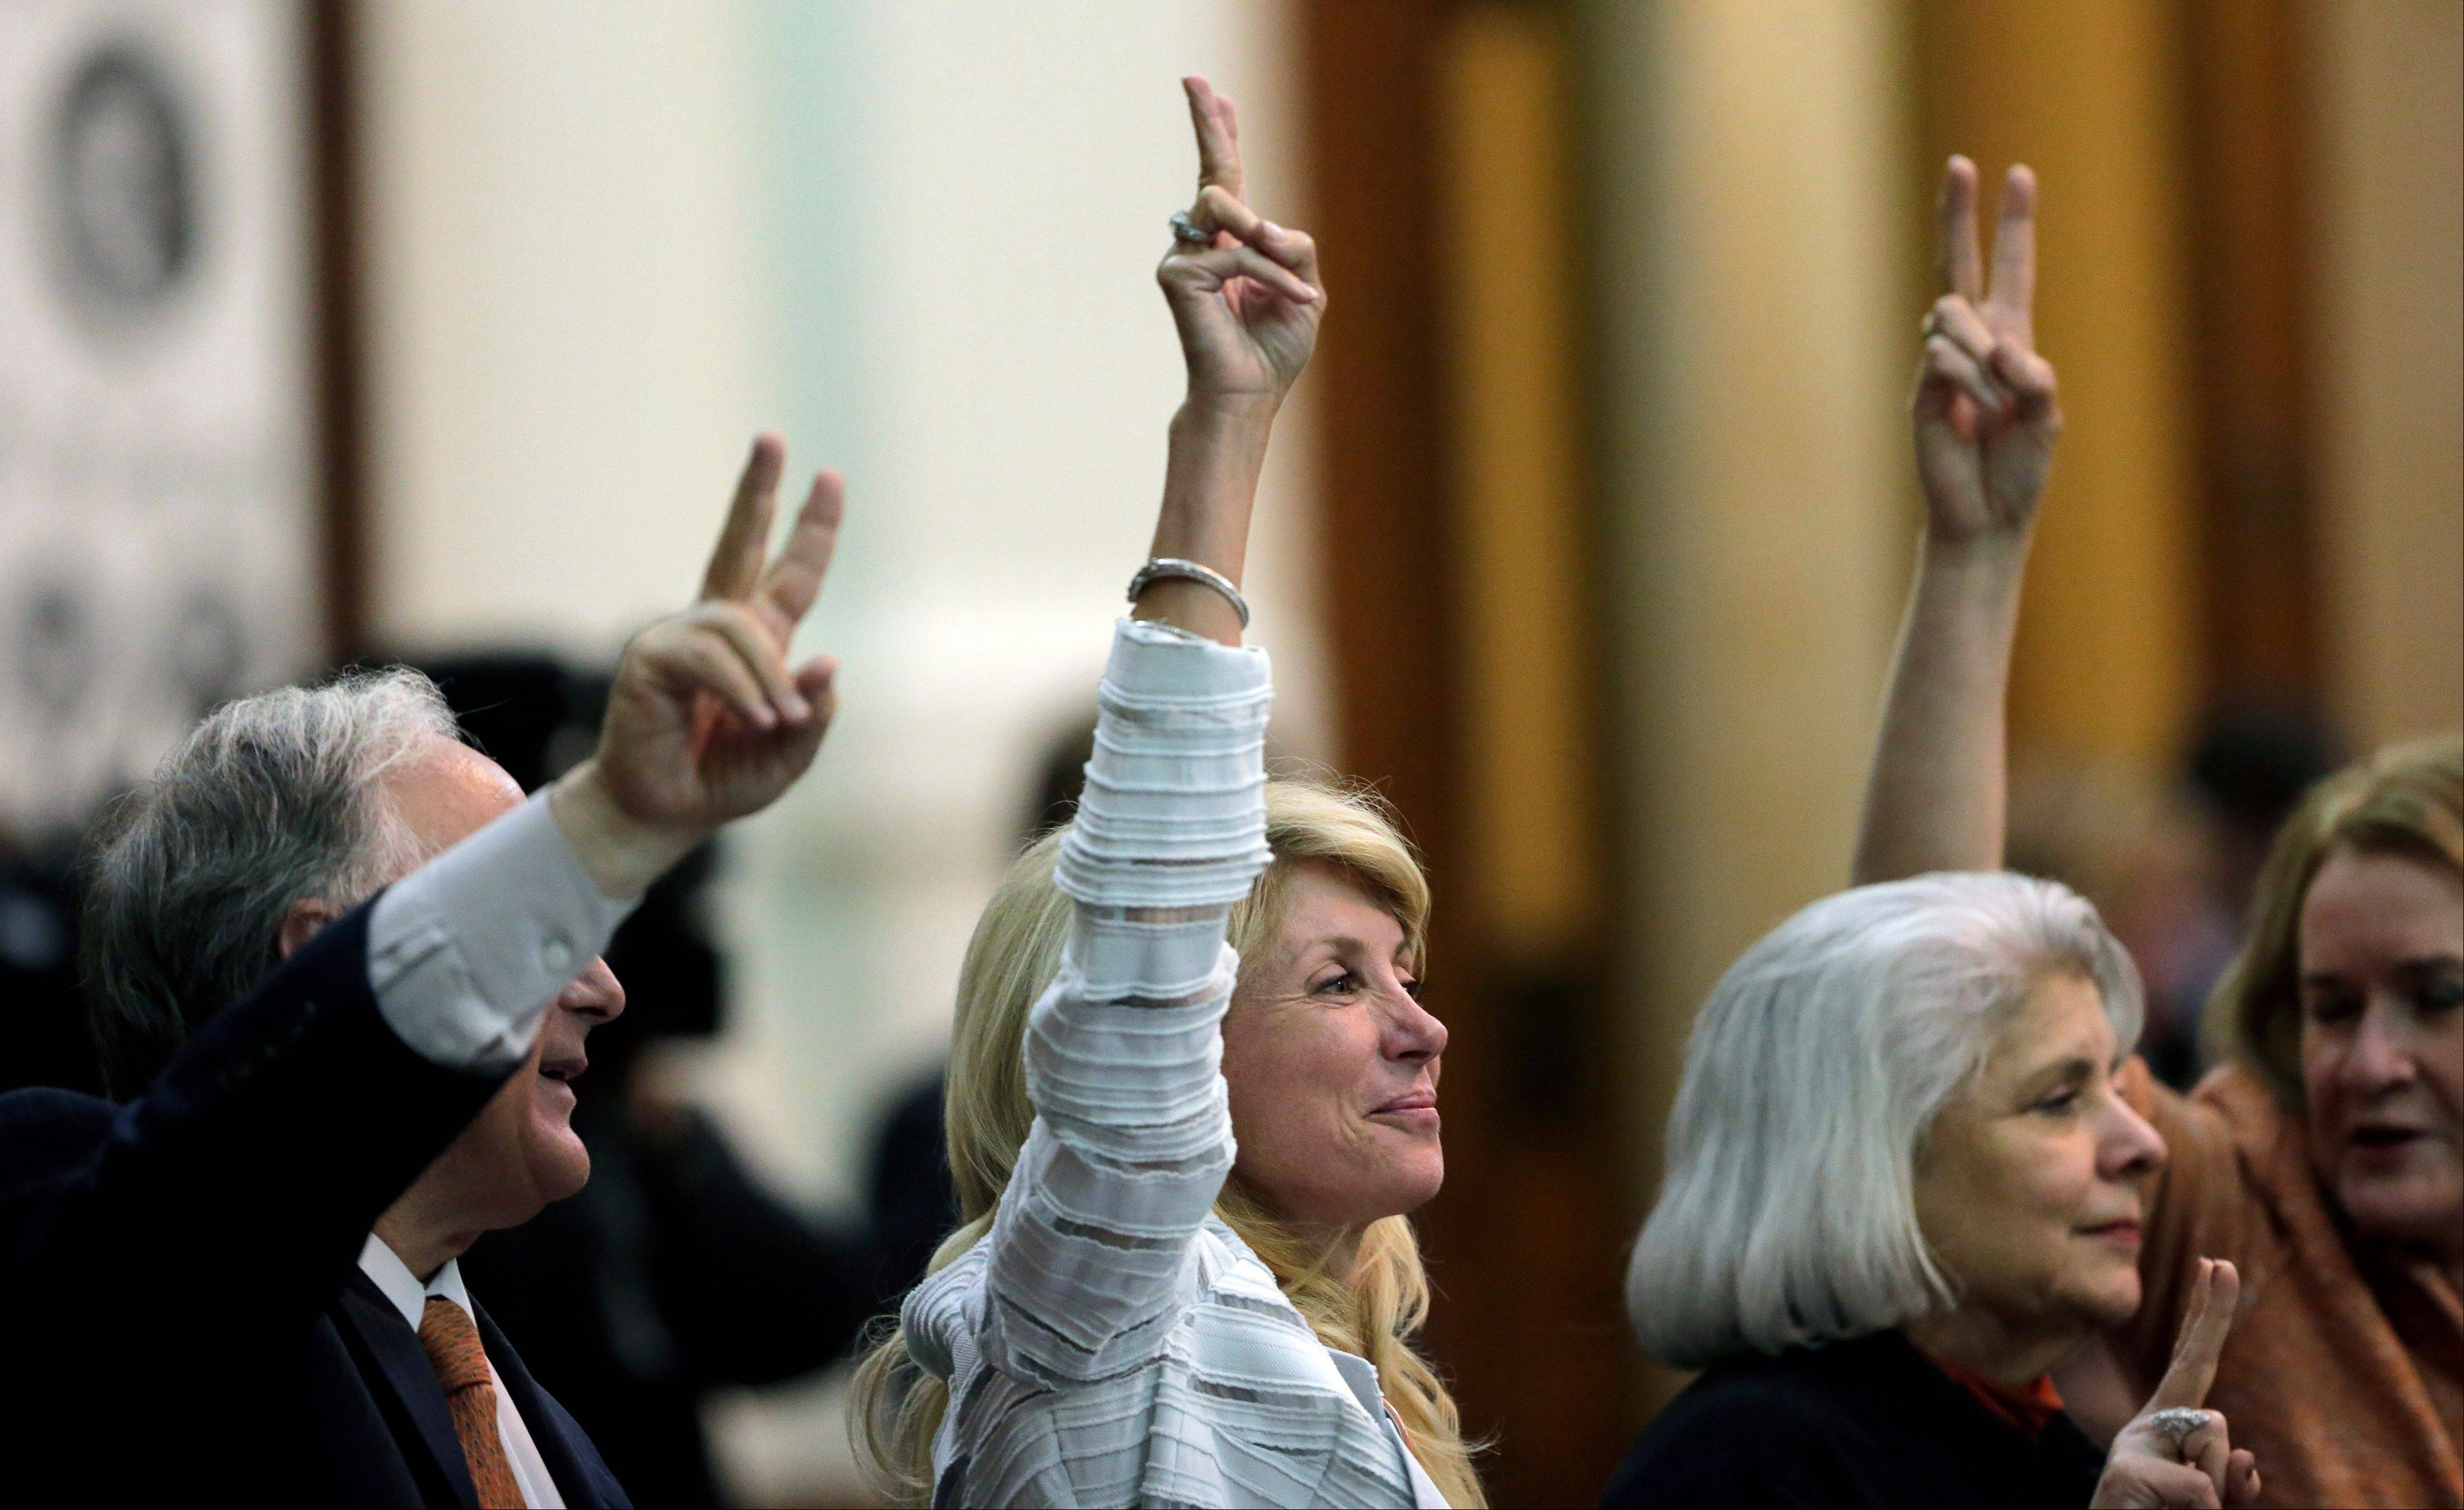 Sen. Wendy Davis, a Democrat from Fort Worth, center, holds up two fingers to signal a �No� vote as the session where she tried to filibuster an abortion bill draws to a close Tuesday in Austin, Texas.